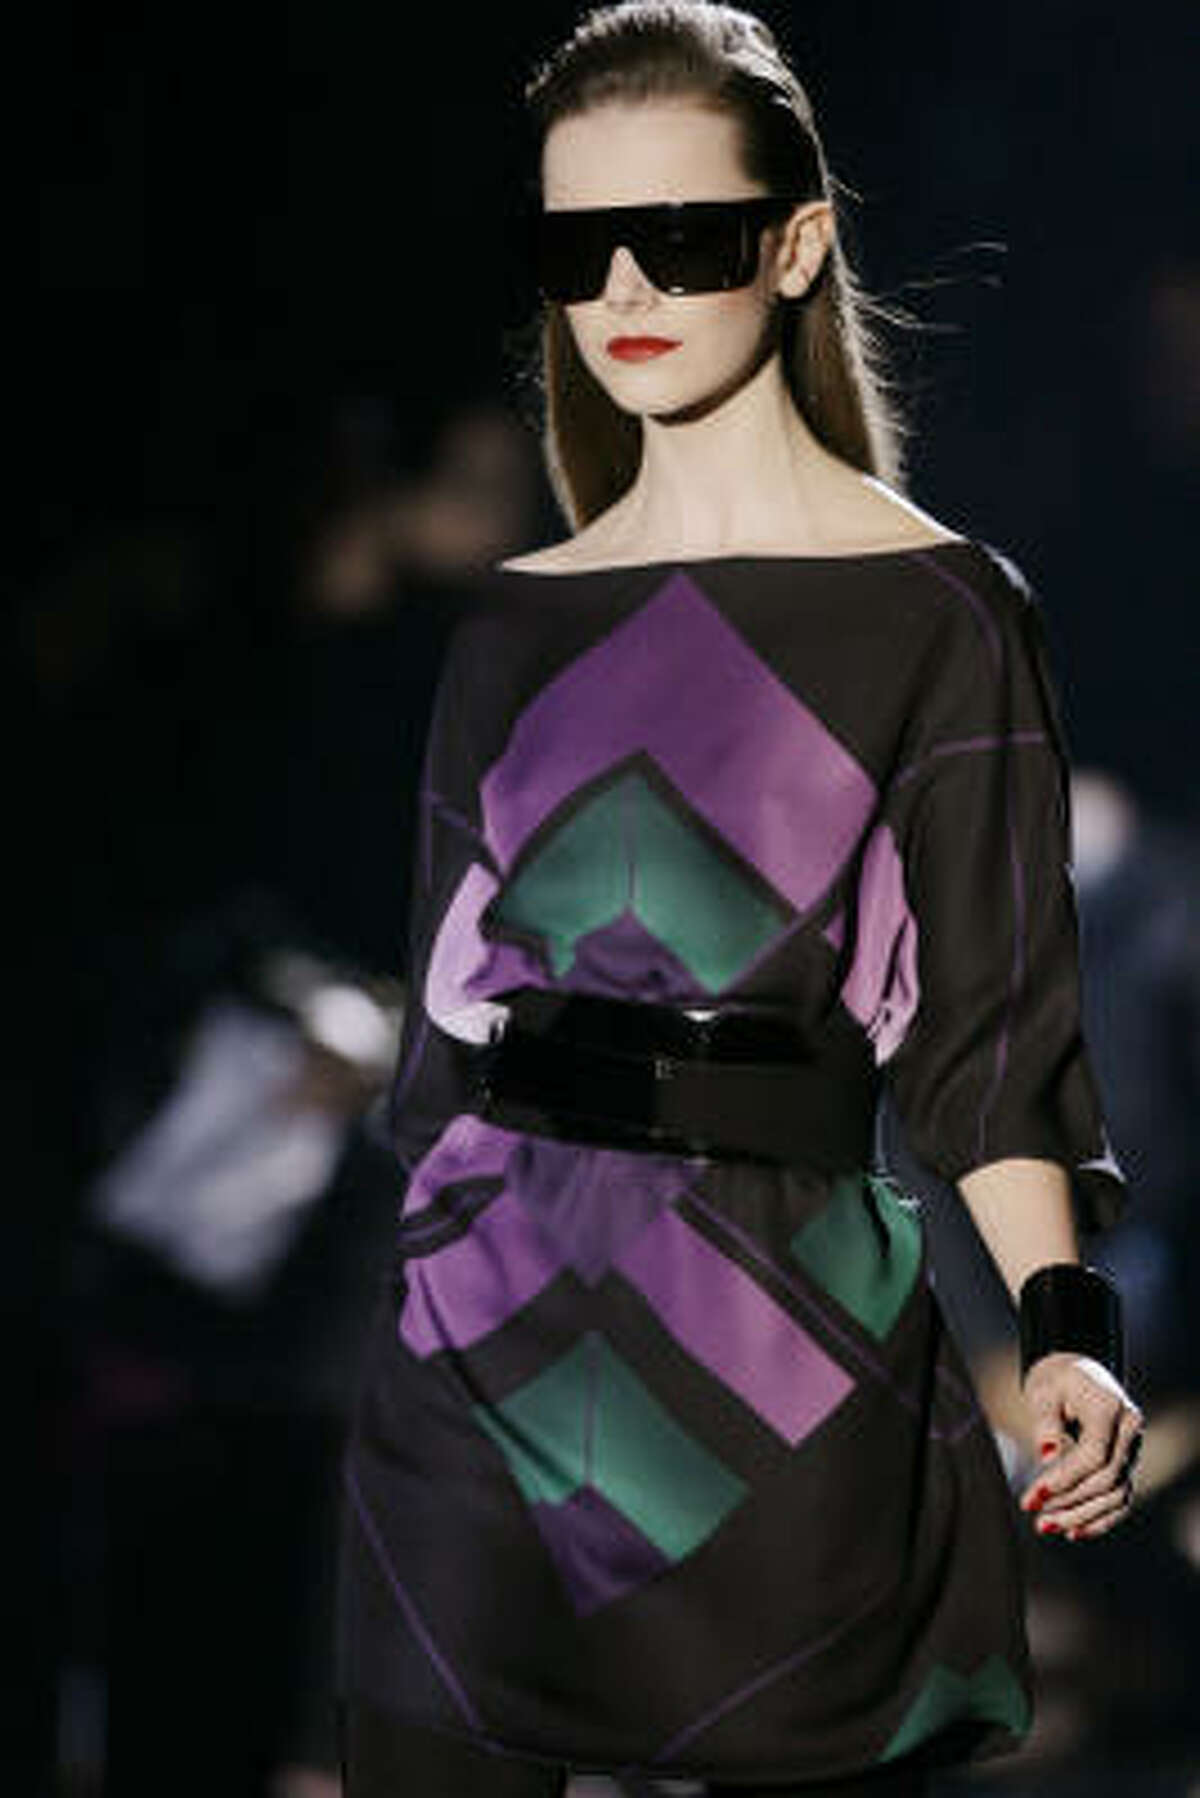 A model shows a creation from the Gucci Fall/Winter 2009/2010 fashion collection shown in Milan, Italy, on Saturday, Feb. 28, 2009.